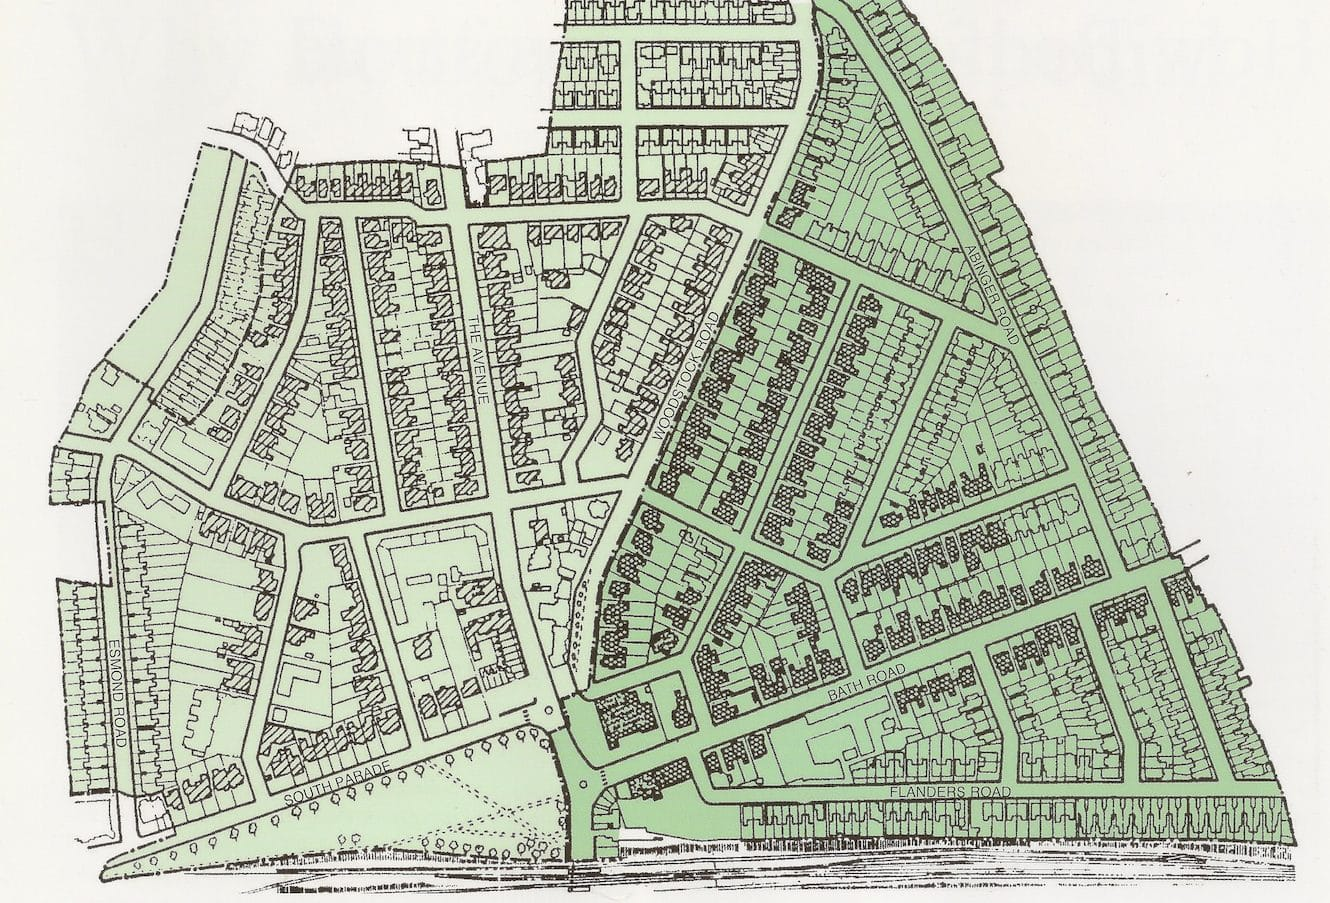 The Bedford Park conservation area stretches from Esmond Road in the west to Abinger Road in the east; from Flanders Road in the South to Fielding Road in the north. Listed houses are shaded.